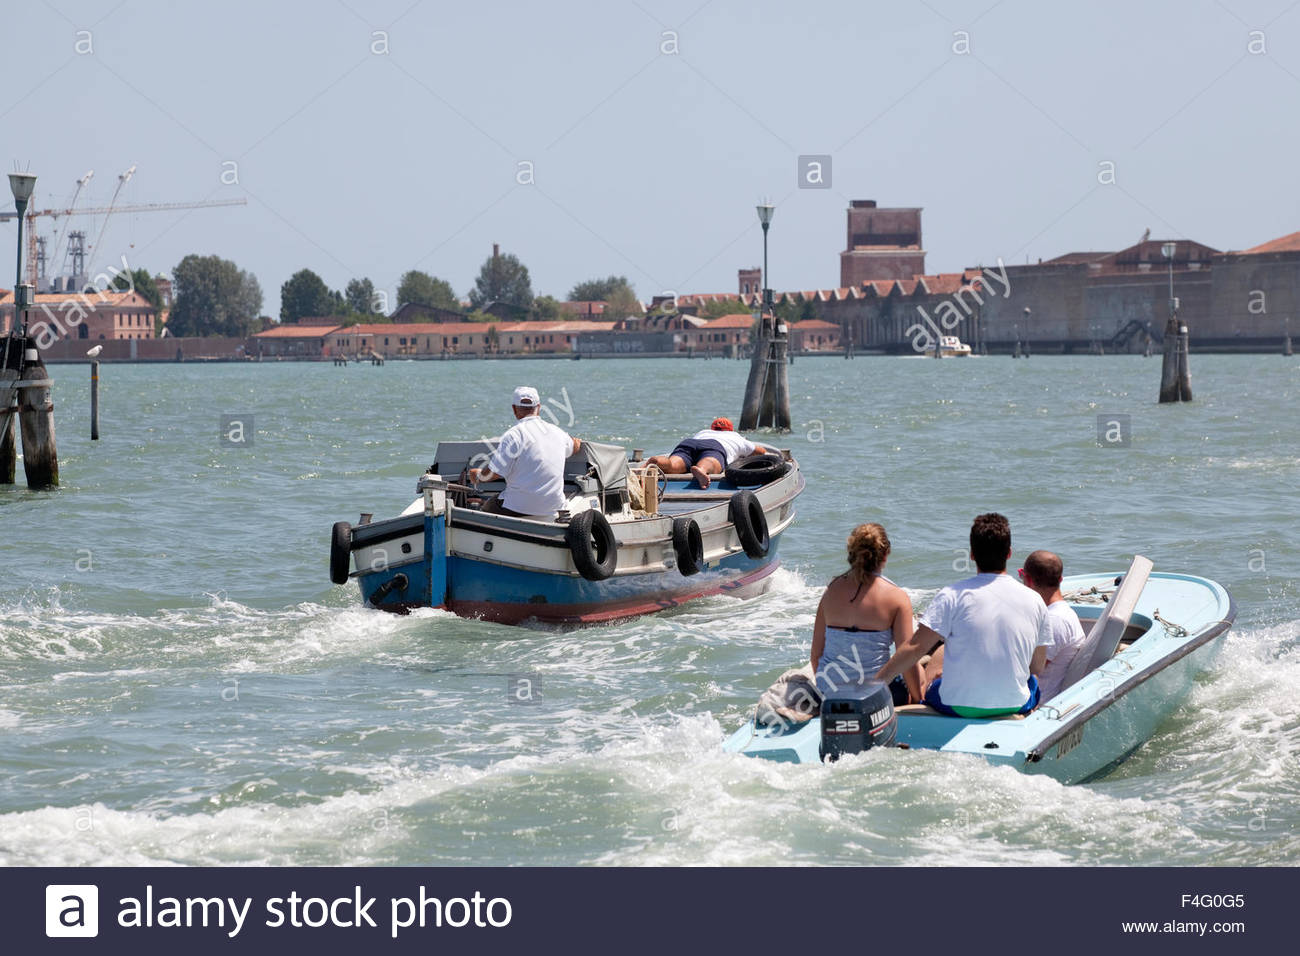 An ordinary day at Venice - Stock Image